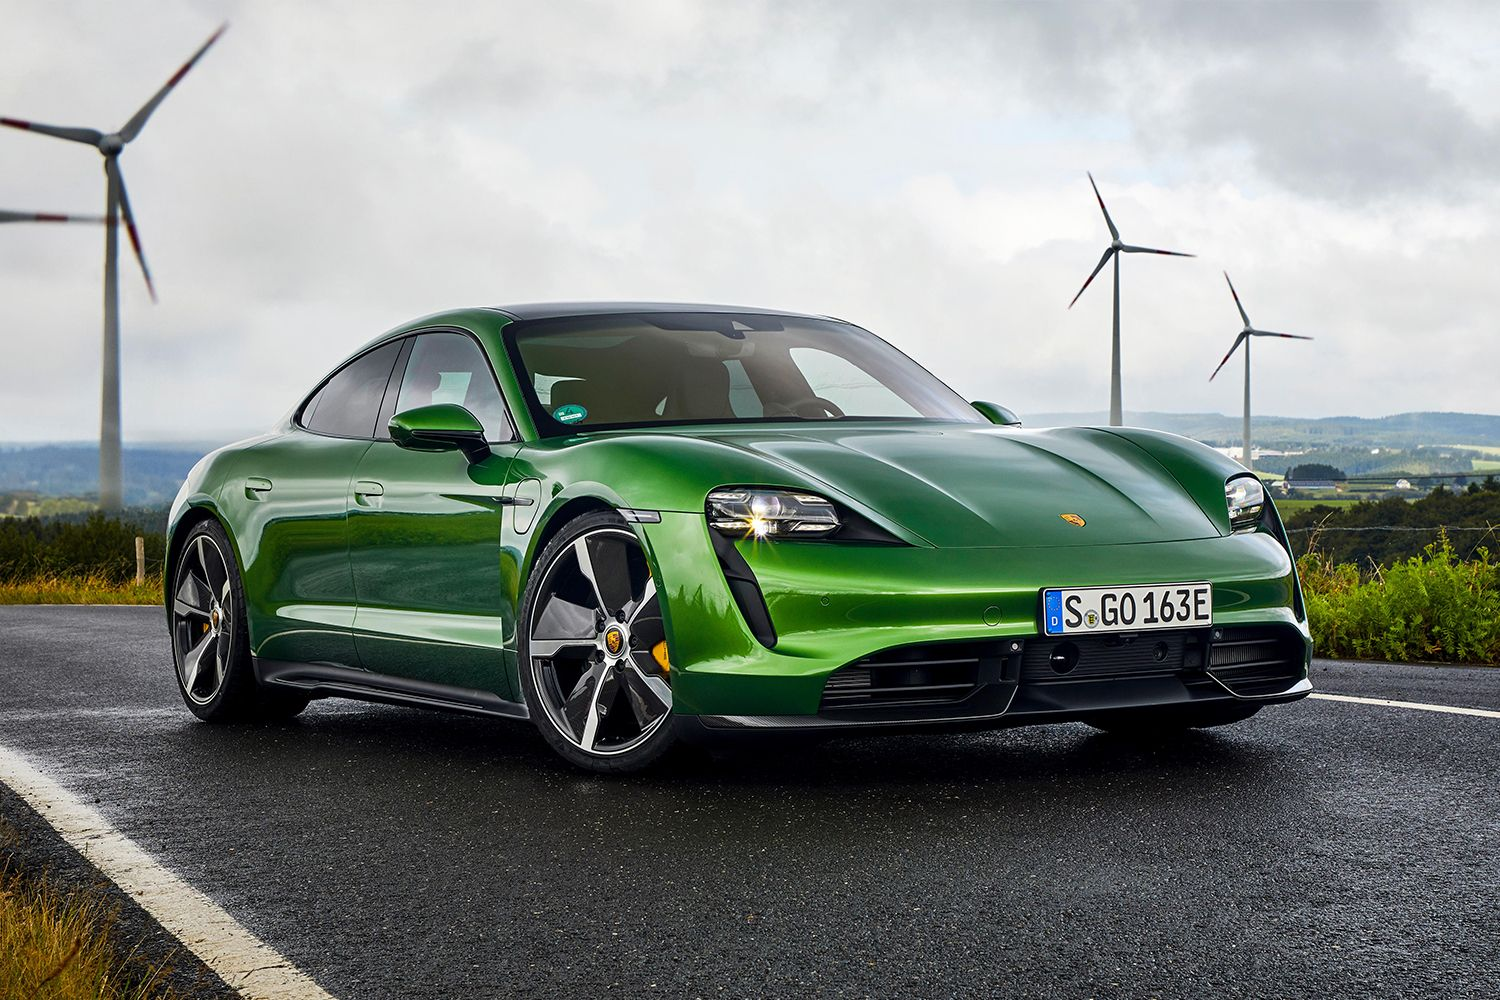 These Are The Least Efficient Electric Vehicles In America Porsche Taycan Green Car Electric Cars